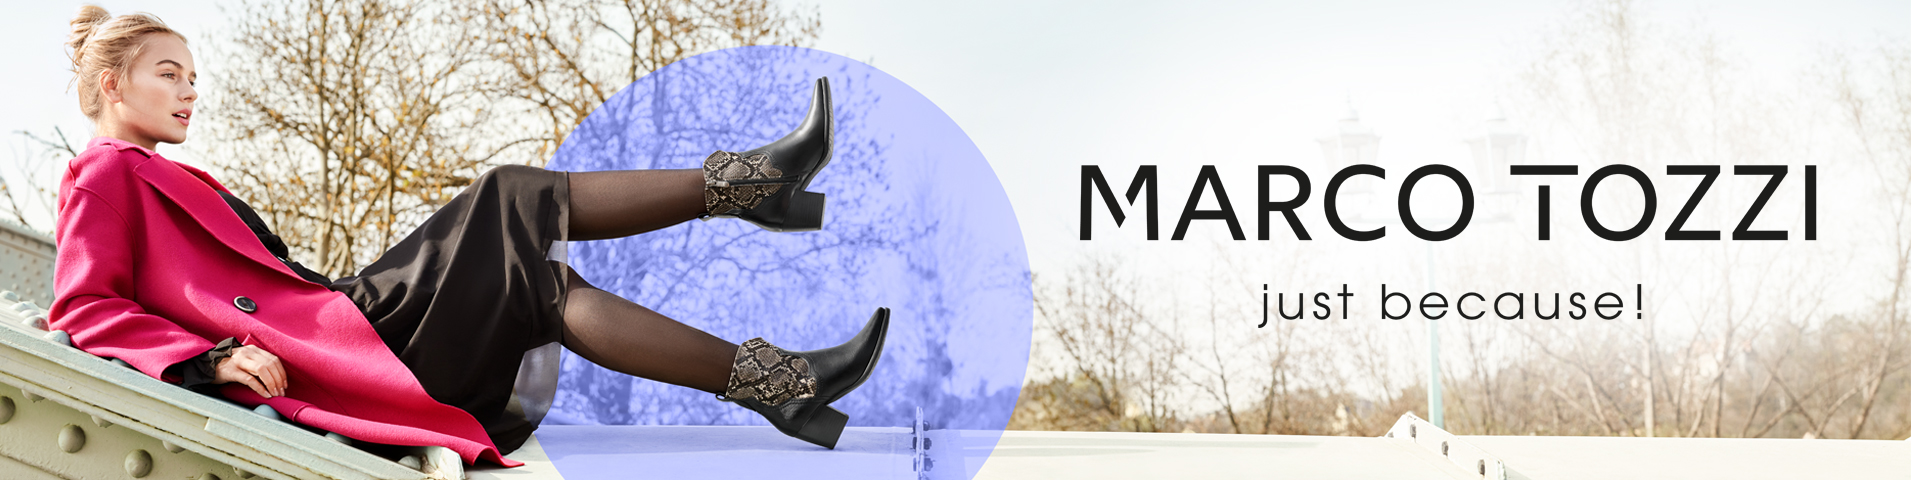 new product 81662 1471f Marco Tozzi Women's Ankle Boots | Booties | ZALANDO UK